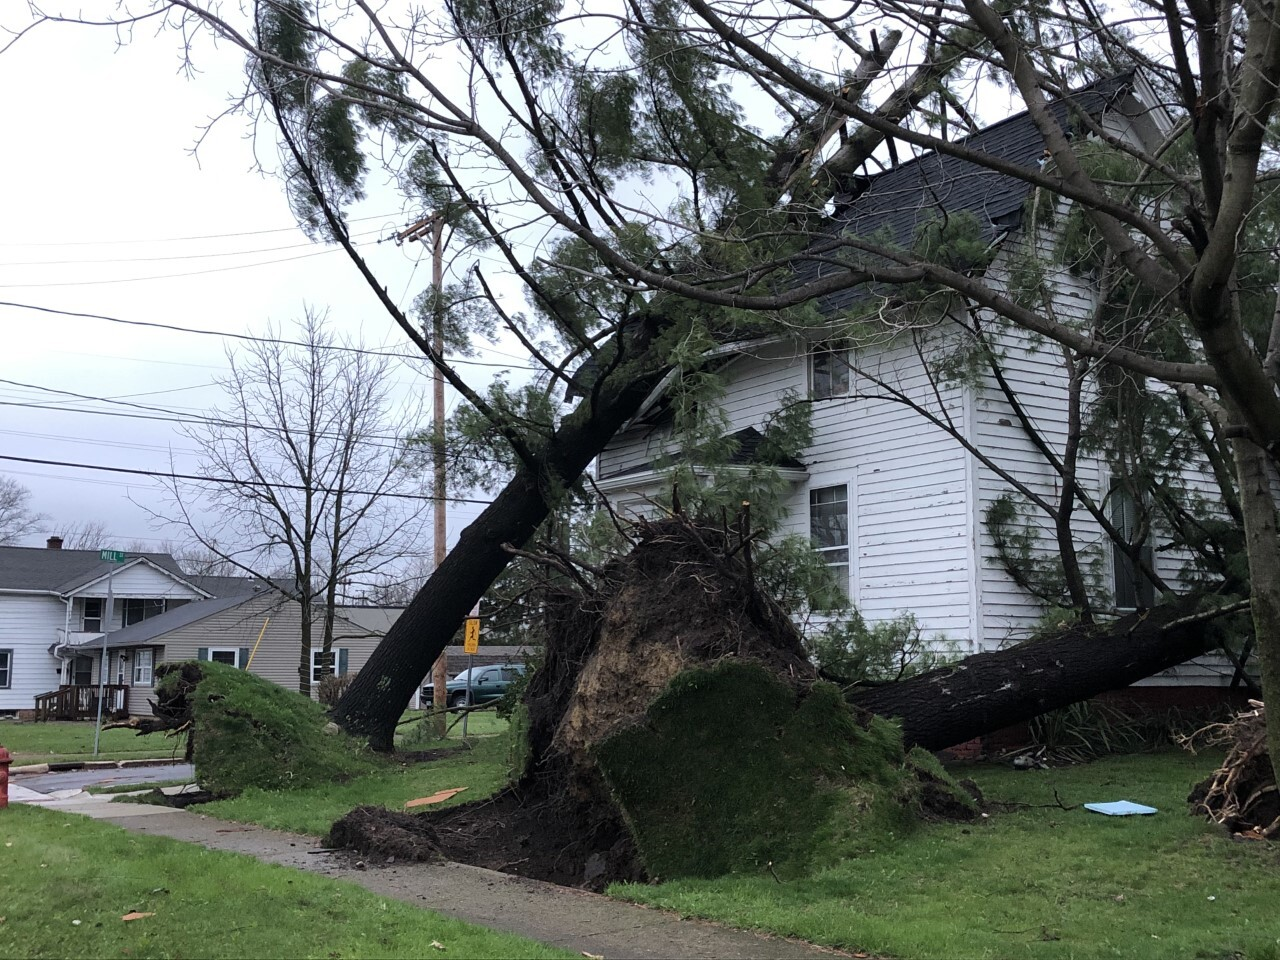 Daylight pictures of storm damage in Medina County.